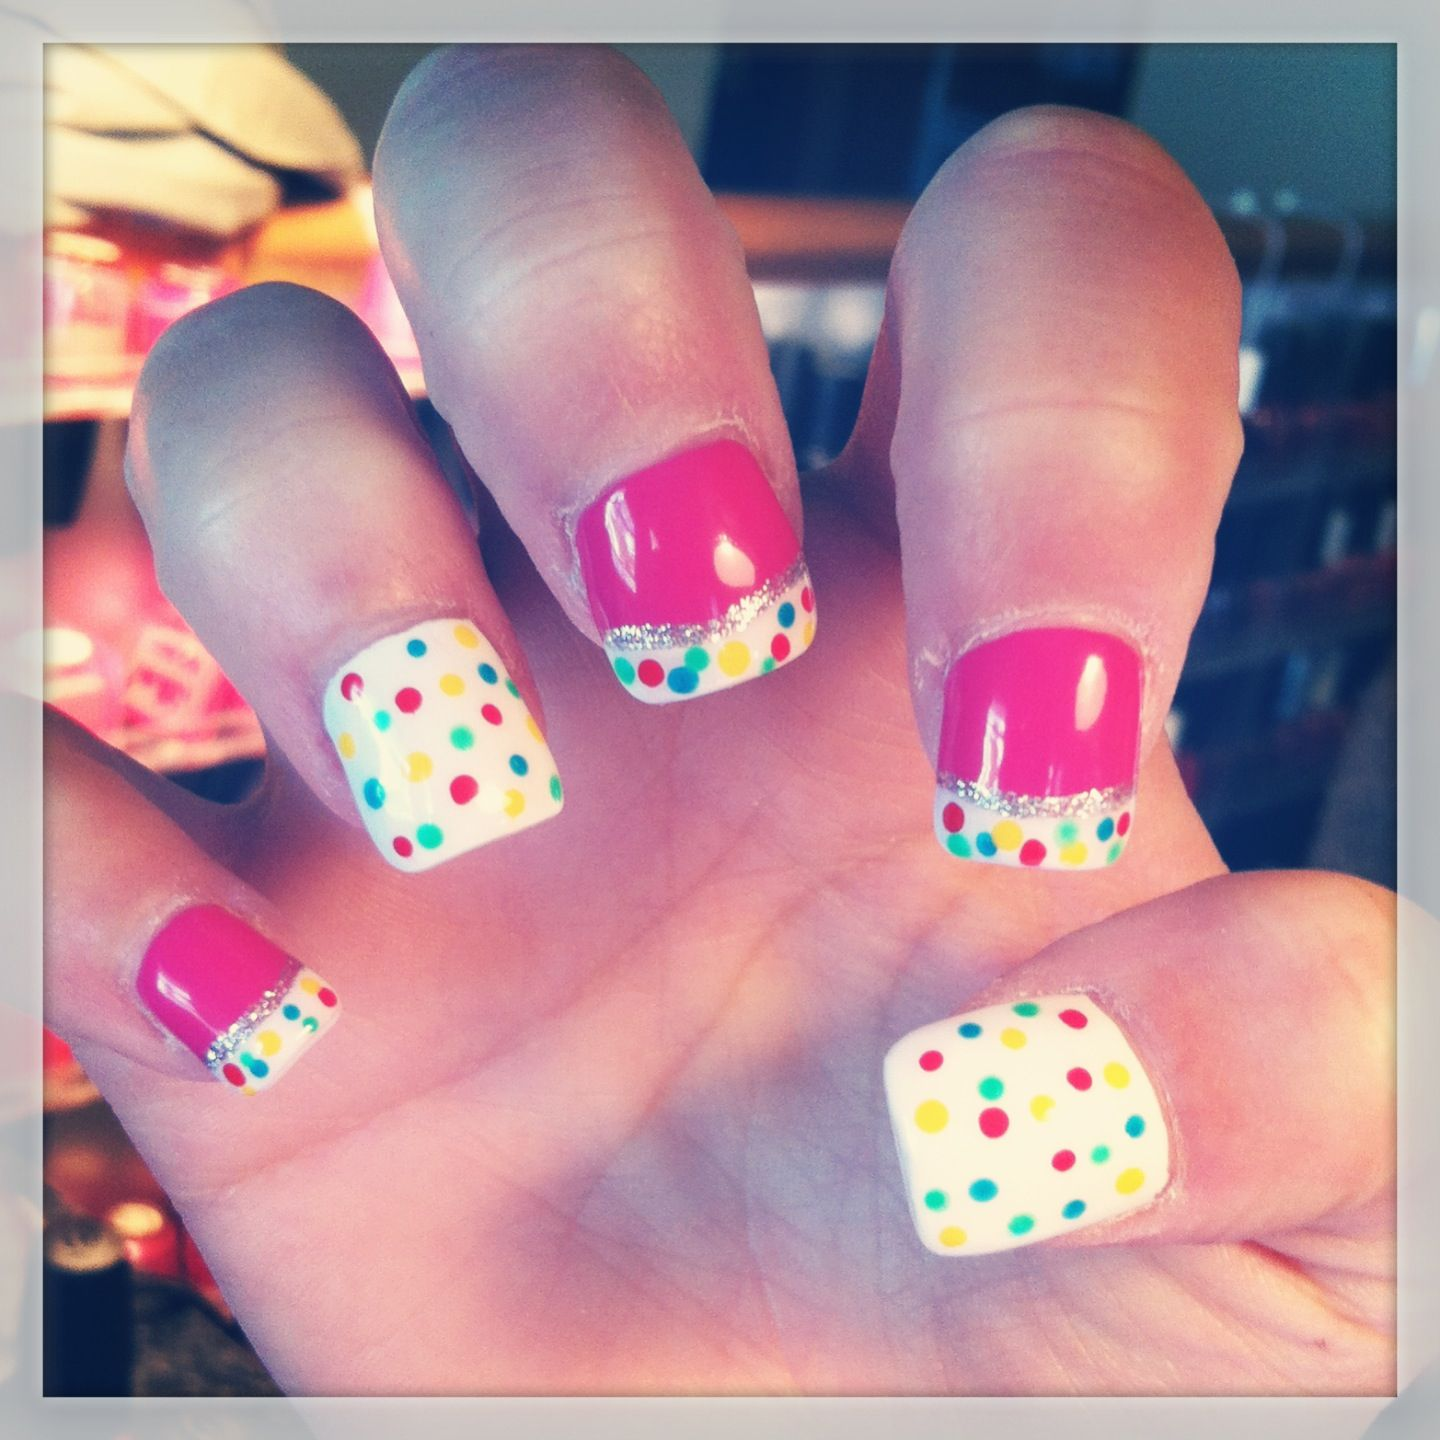 Summertime fun. Absolutely fab! Pink. White. Multicolor dots ...